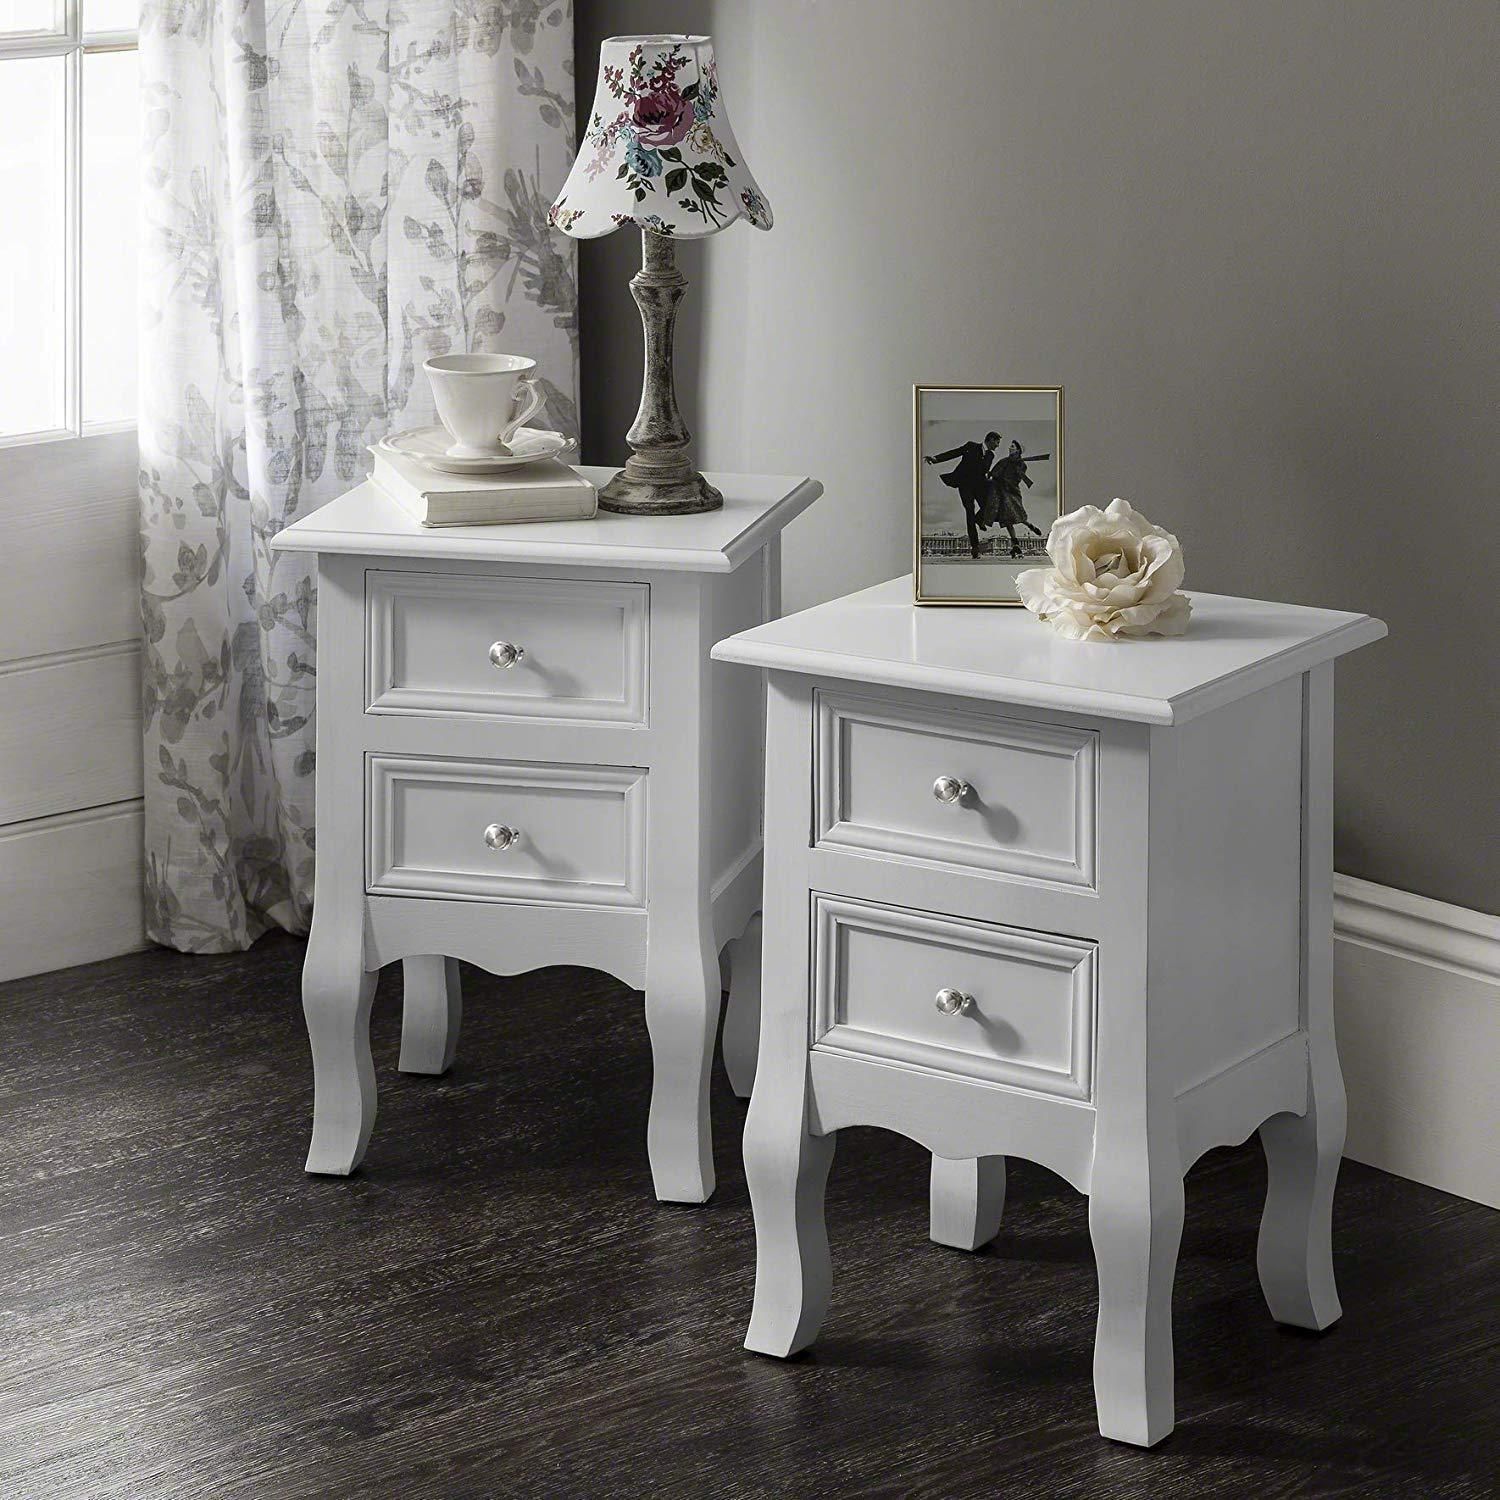 White Bedside Tables (2 Units) Fully Assembled - Laura James